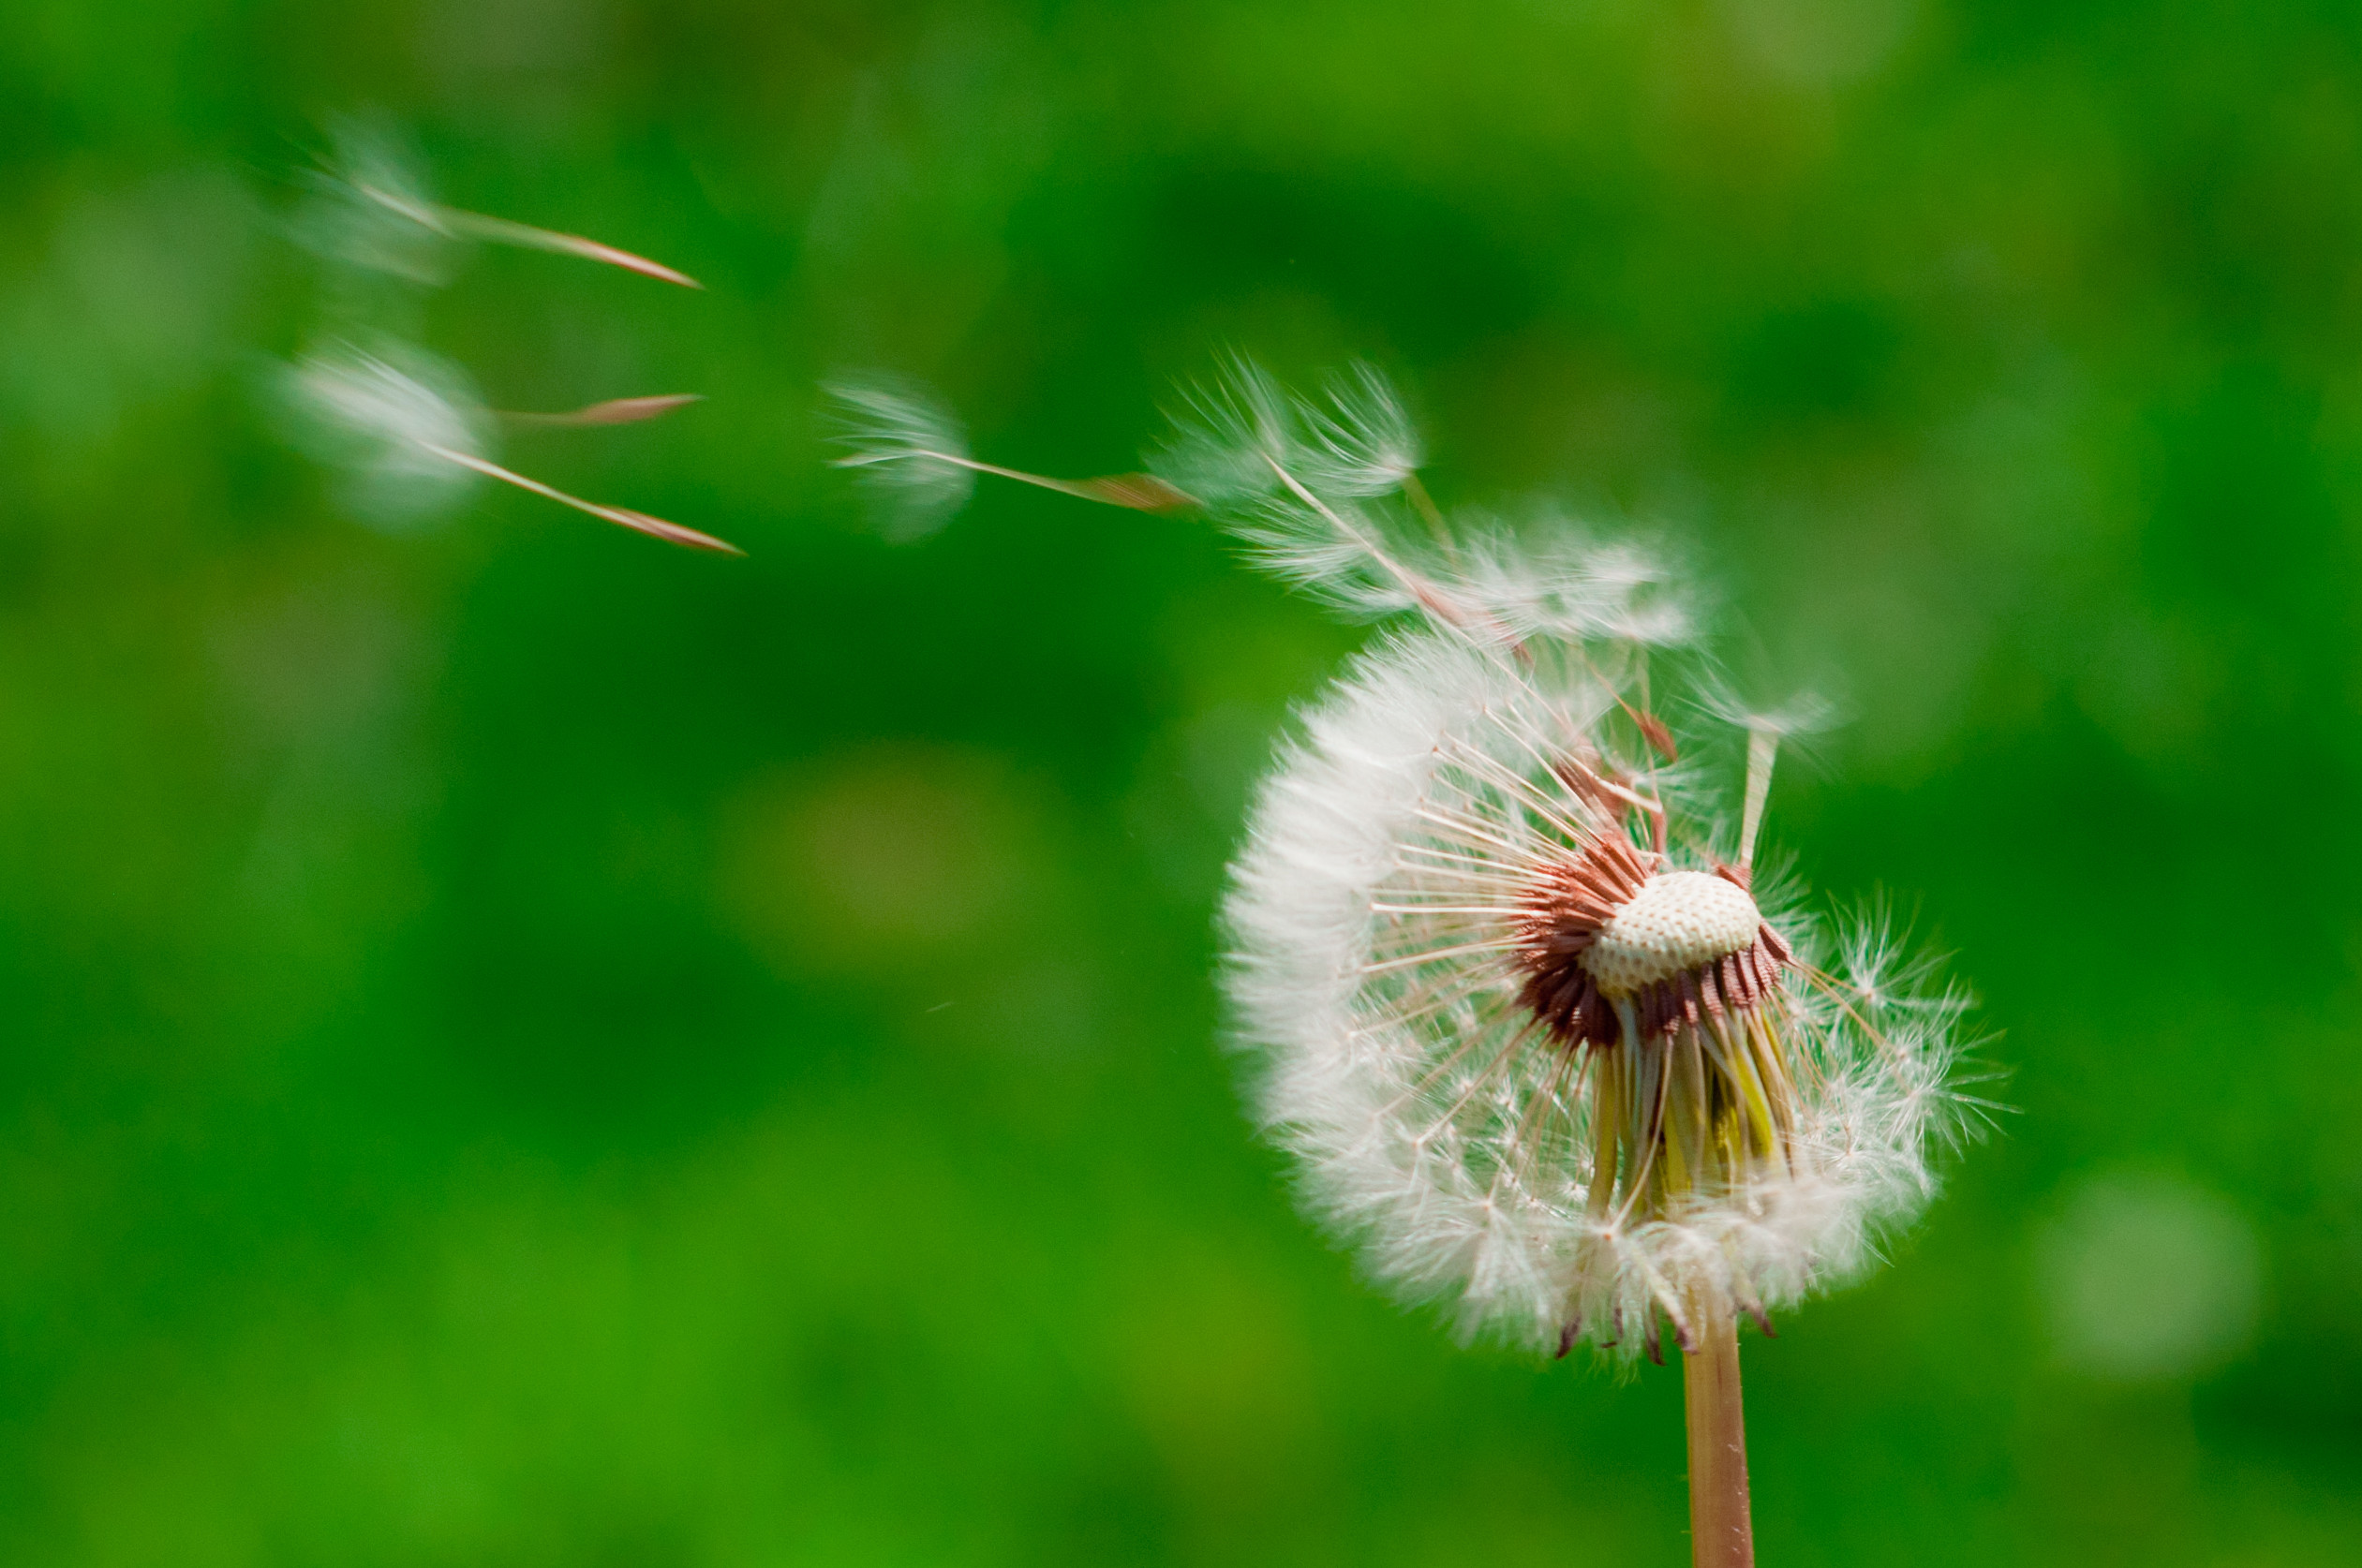 Dandelions blowing in the wind wallpaper – photo#16